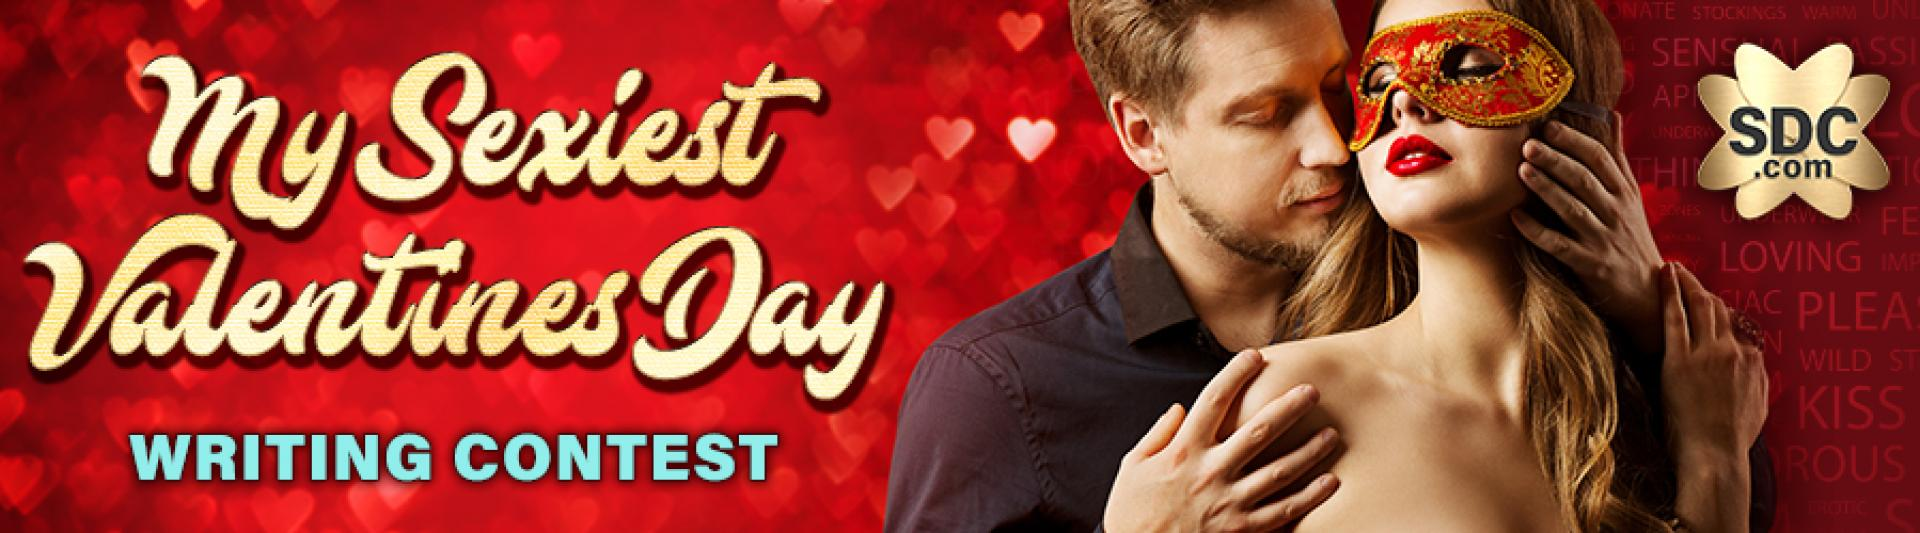 SDC's 2021 Sexiest Valentine's Day Erotic Writing Contest